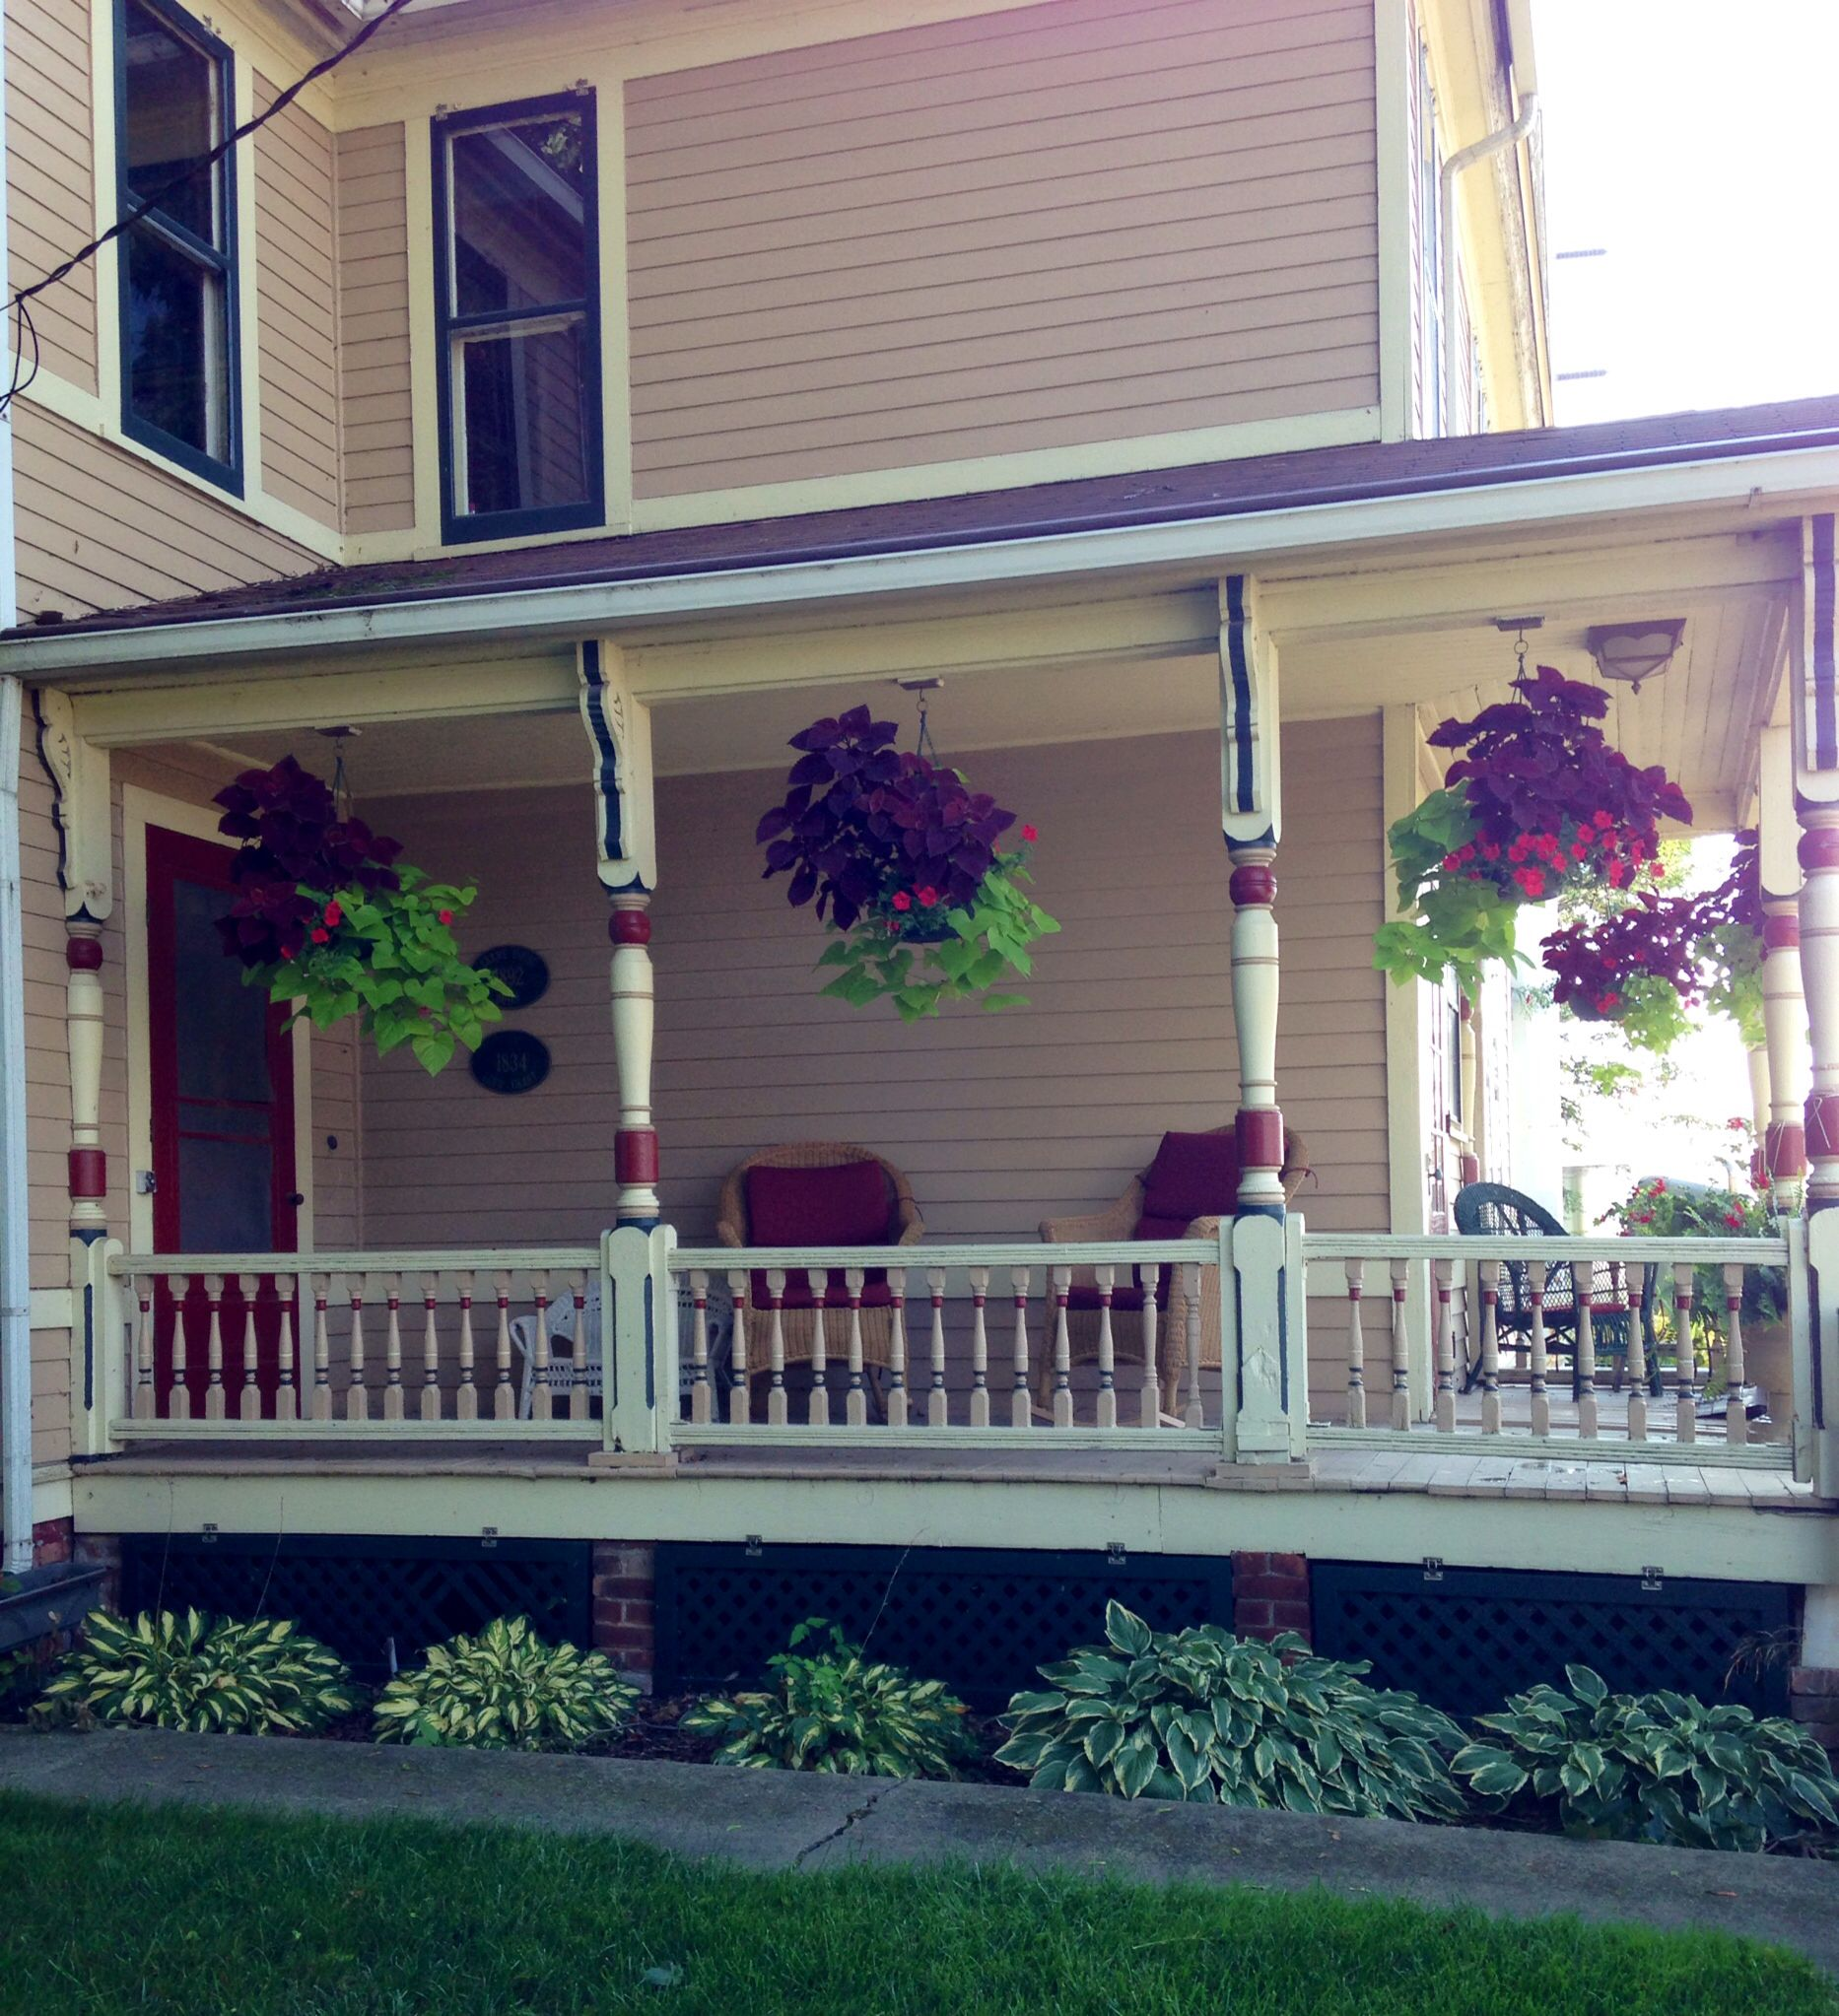 Hostas and hanging baskets along the front porch 2014.